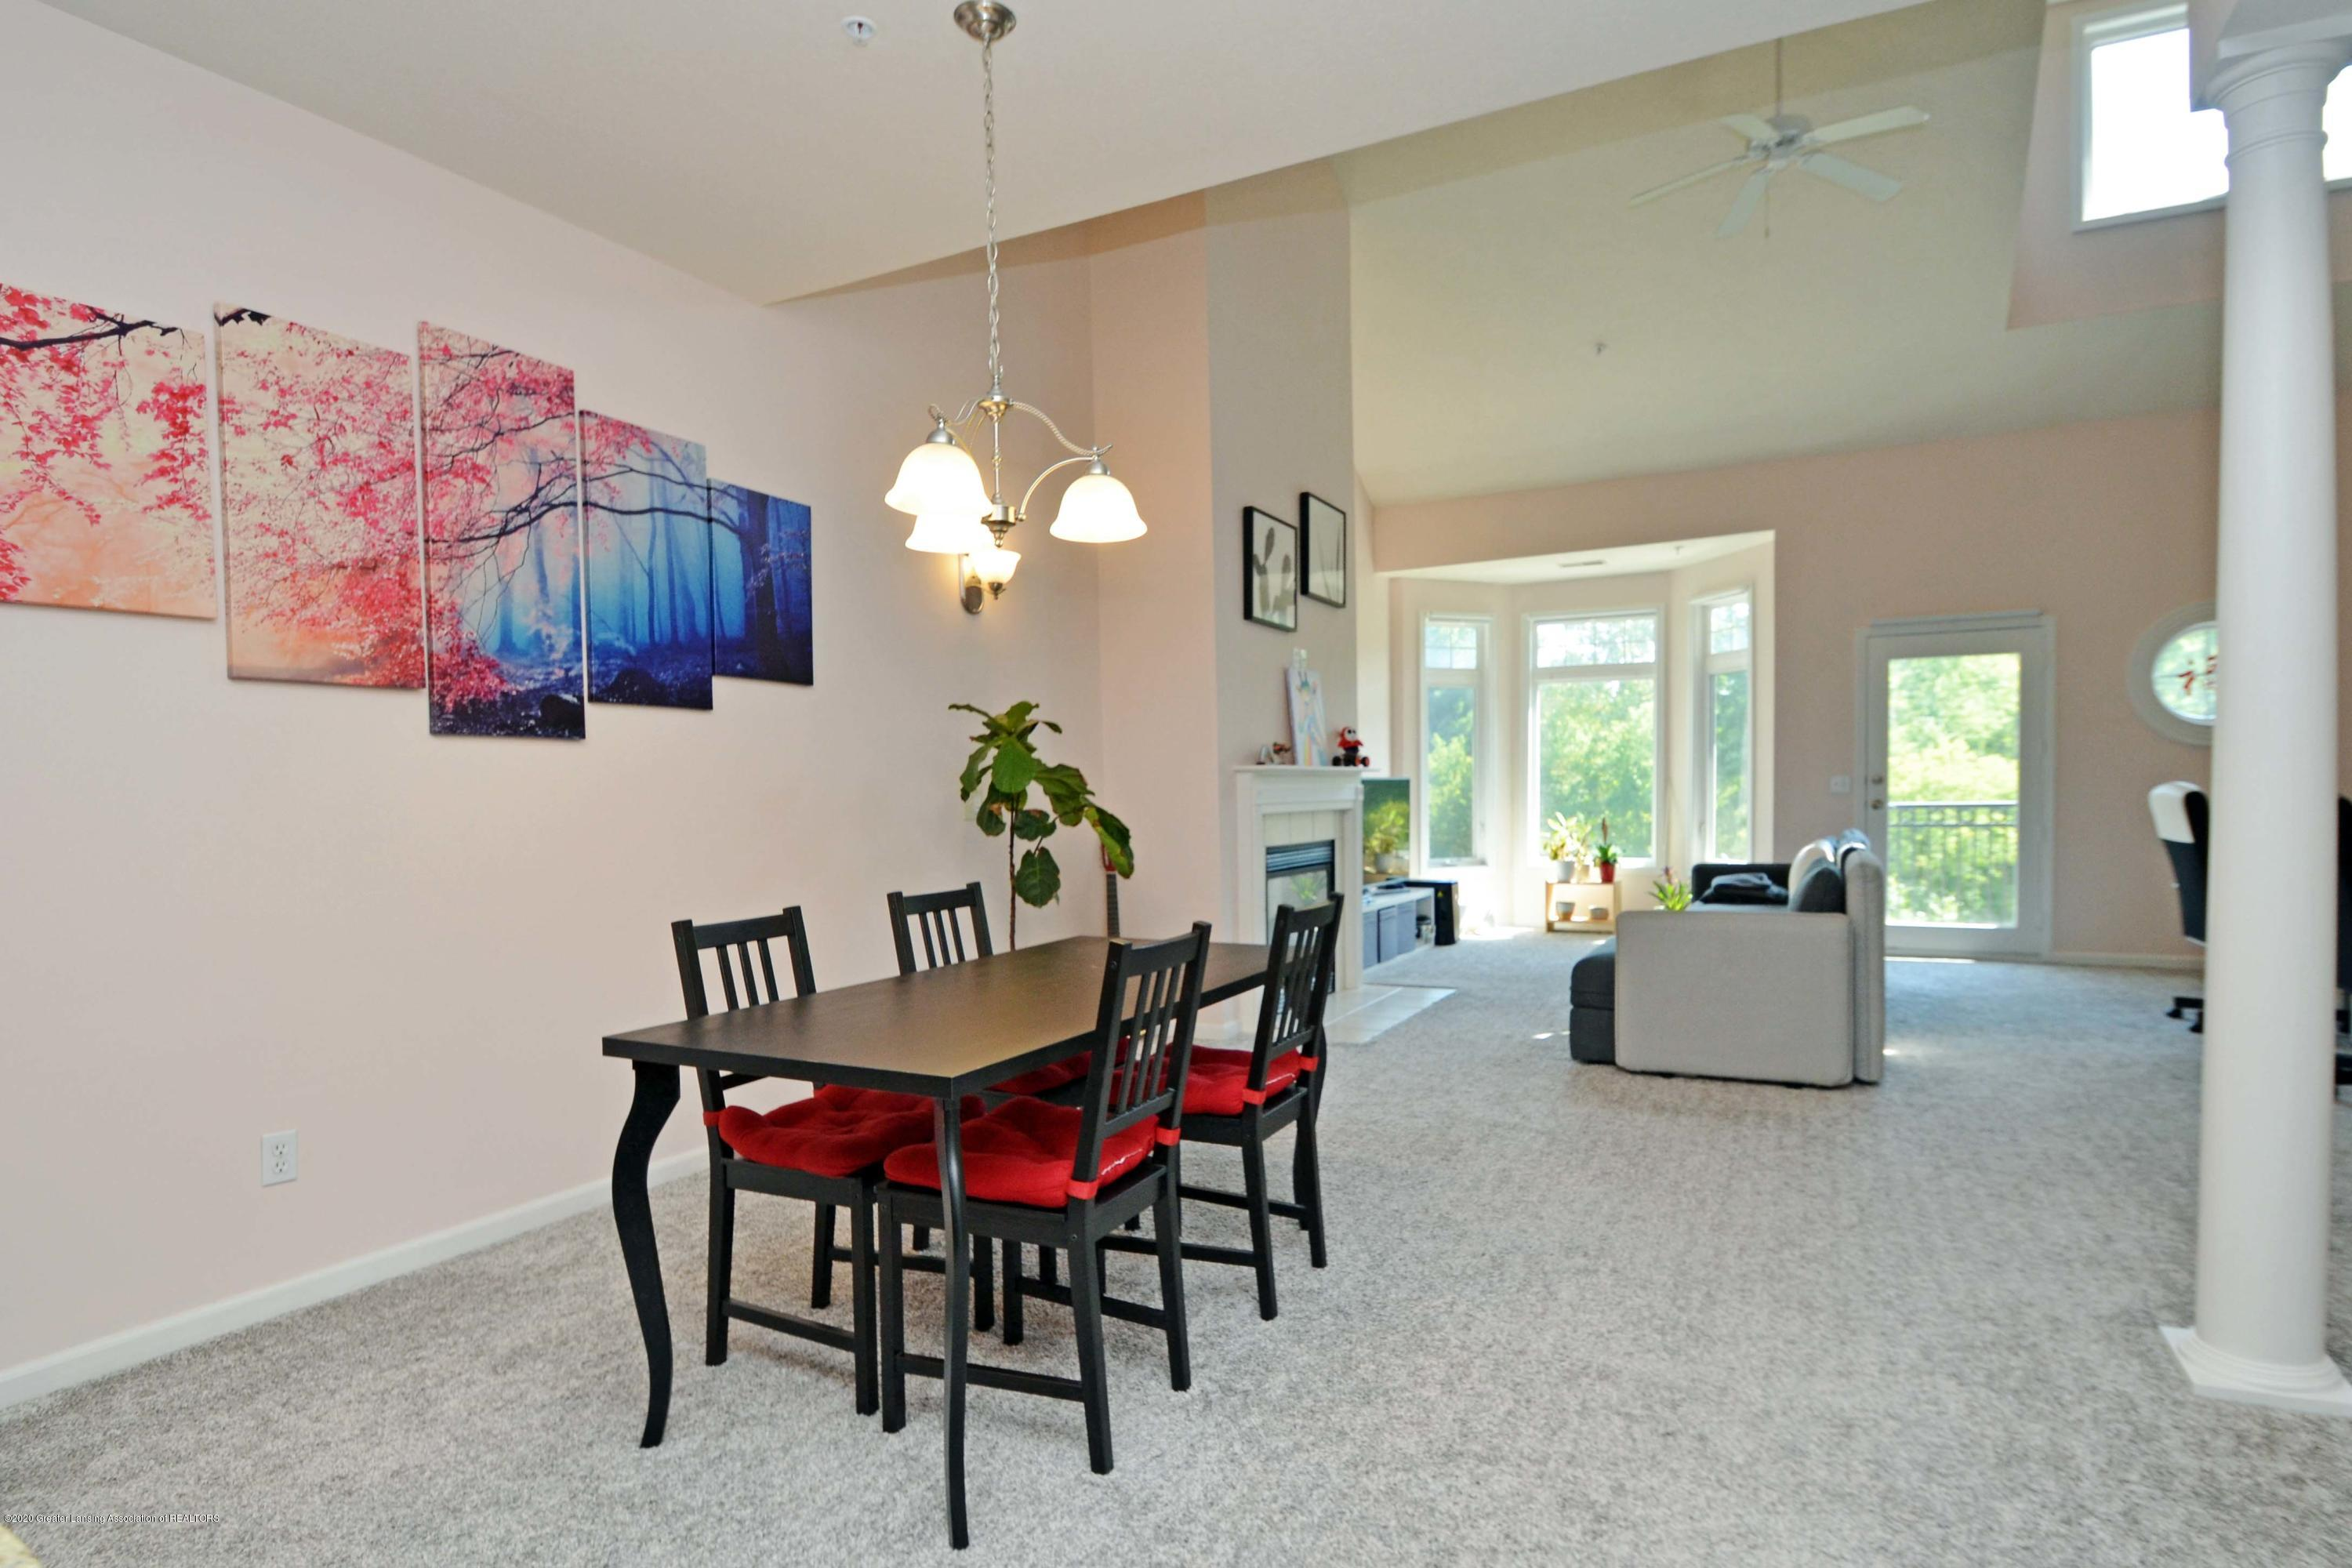 2034 Central Park Dr - 8Dining Area - 8